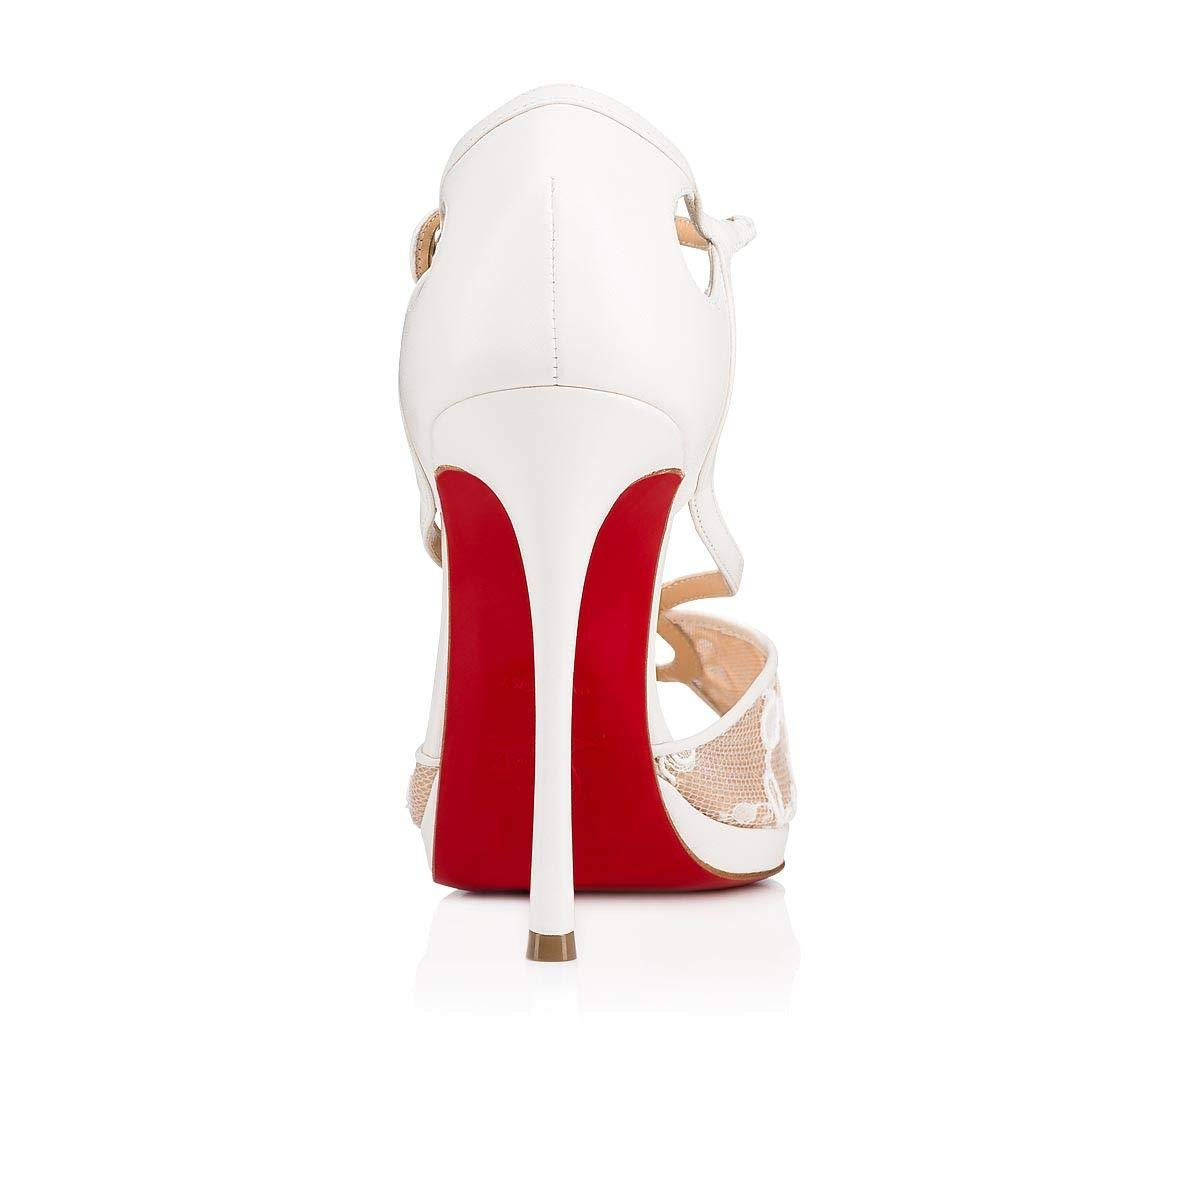 Christian Louboutin Luxury Fashion Leather Heels Sandal 03